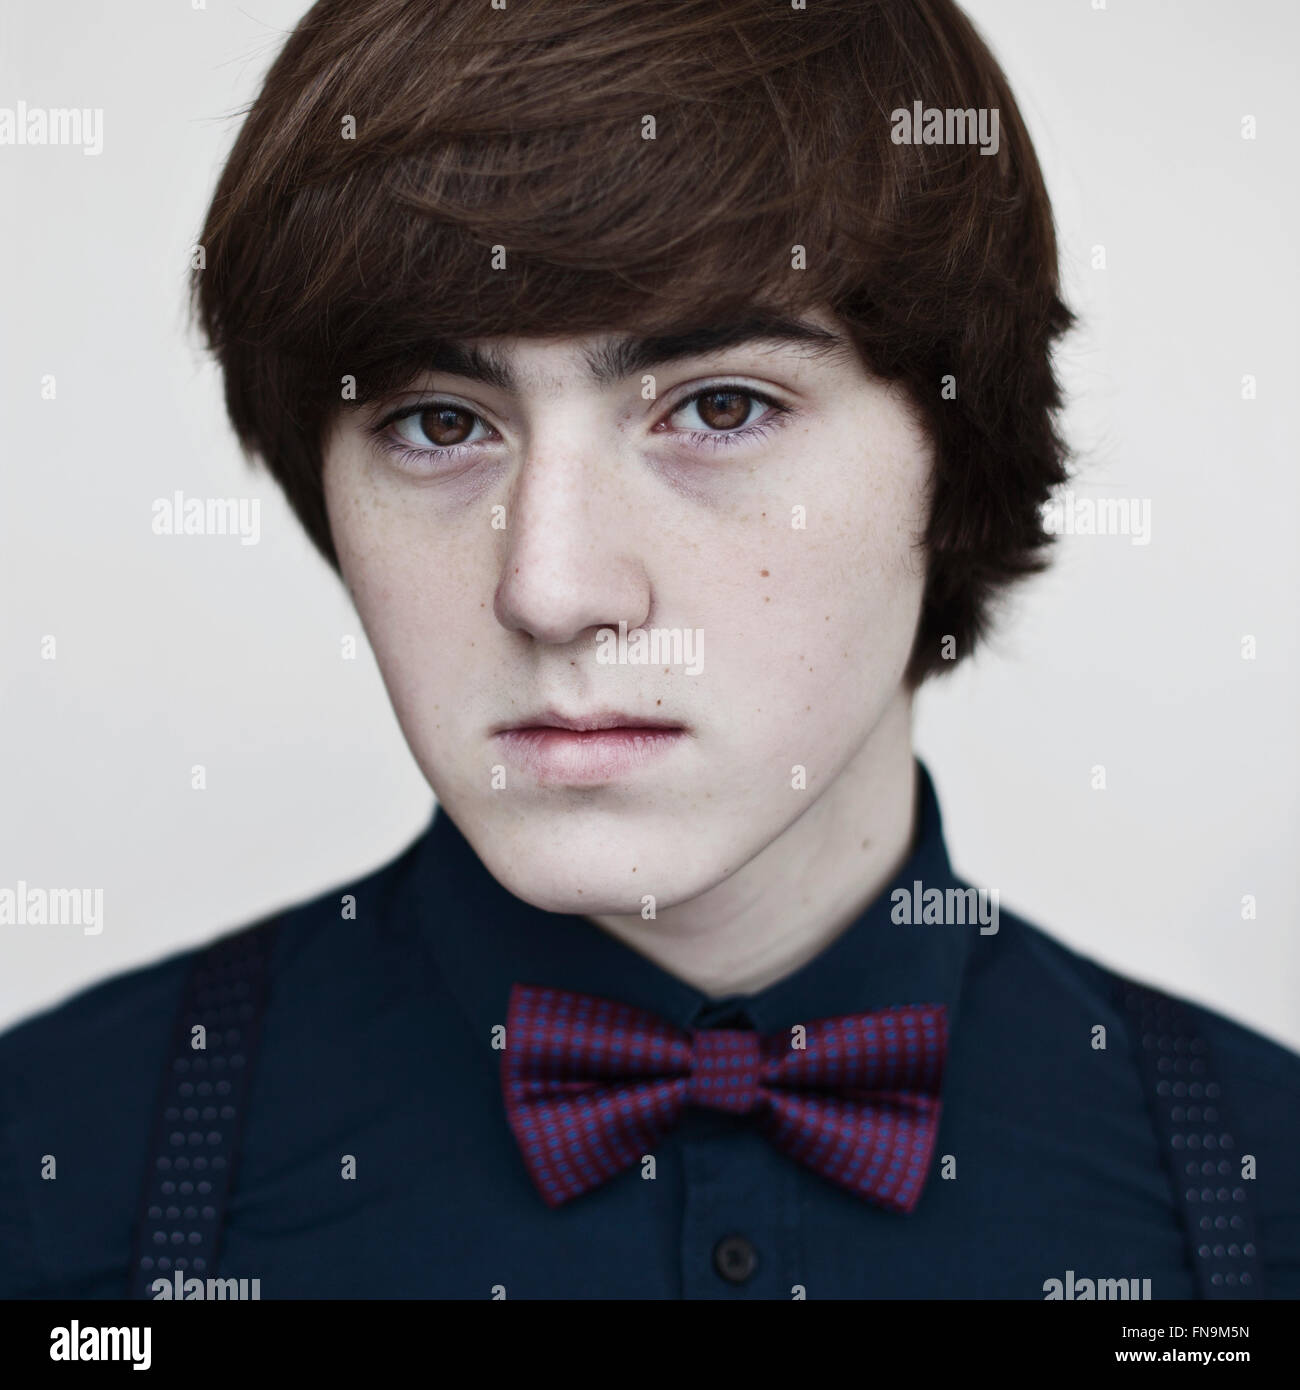 Portrait of a boy wearing a bow tie - Stock Image